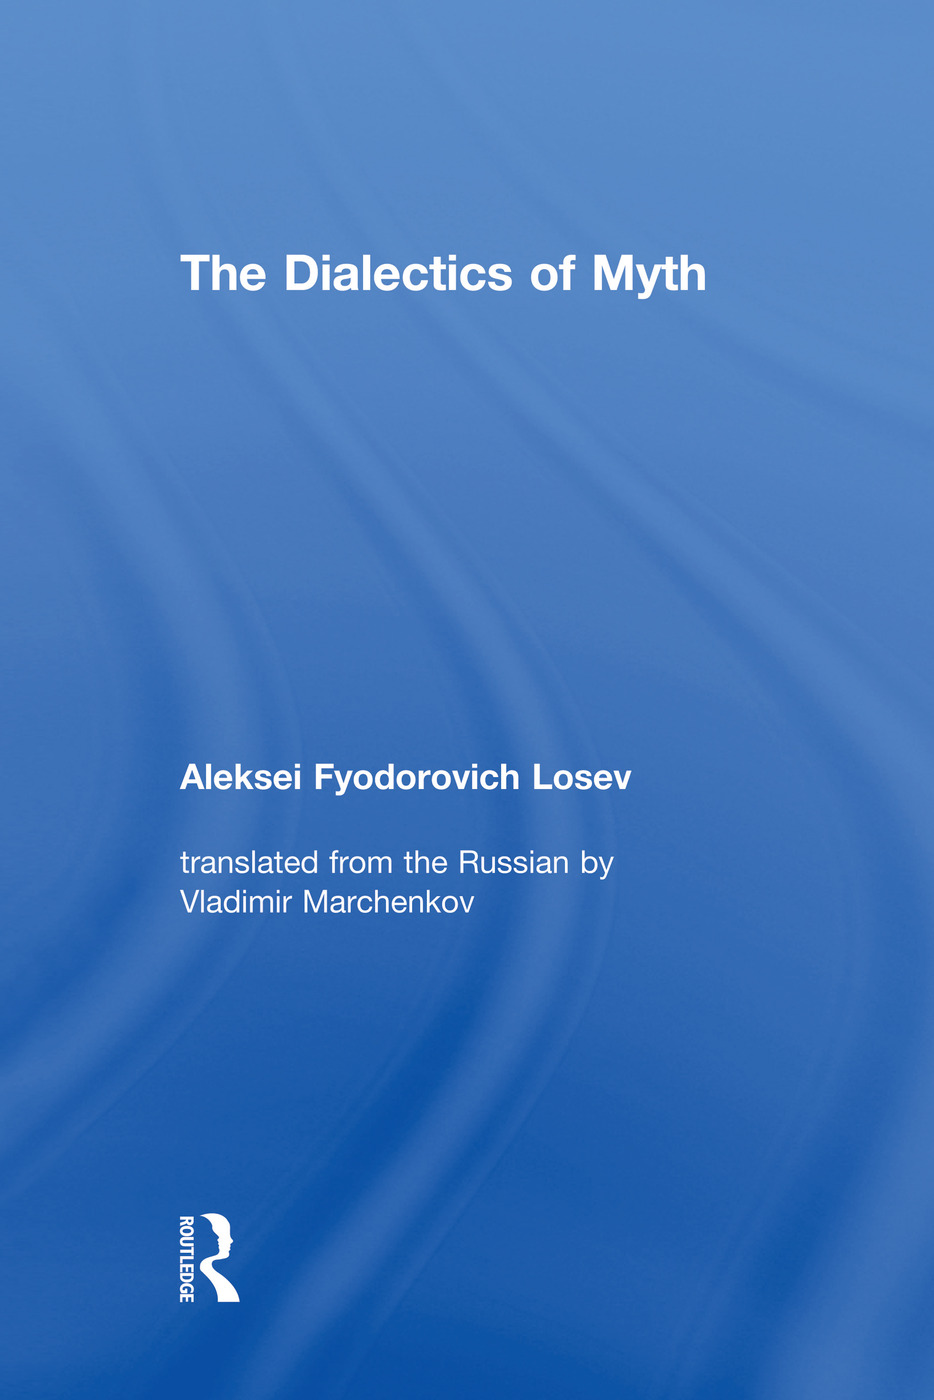 The Dialectics of Myth